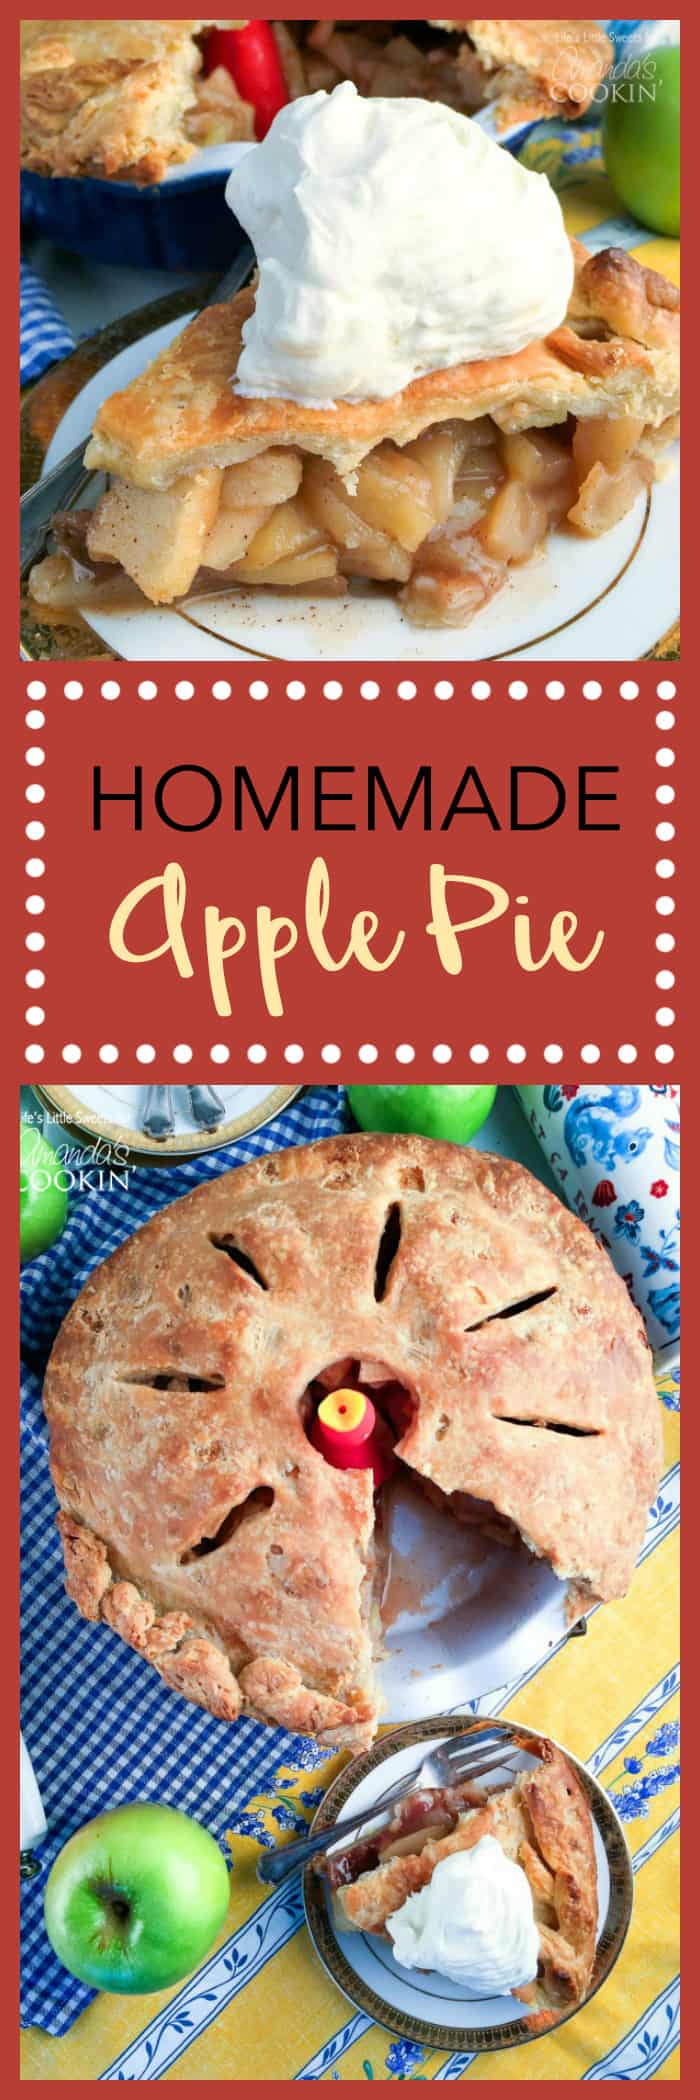 You'll love the smell that comes wafting from the kitchen when this homemade apple pie is in the oven.